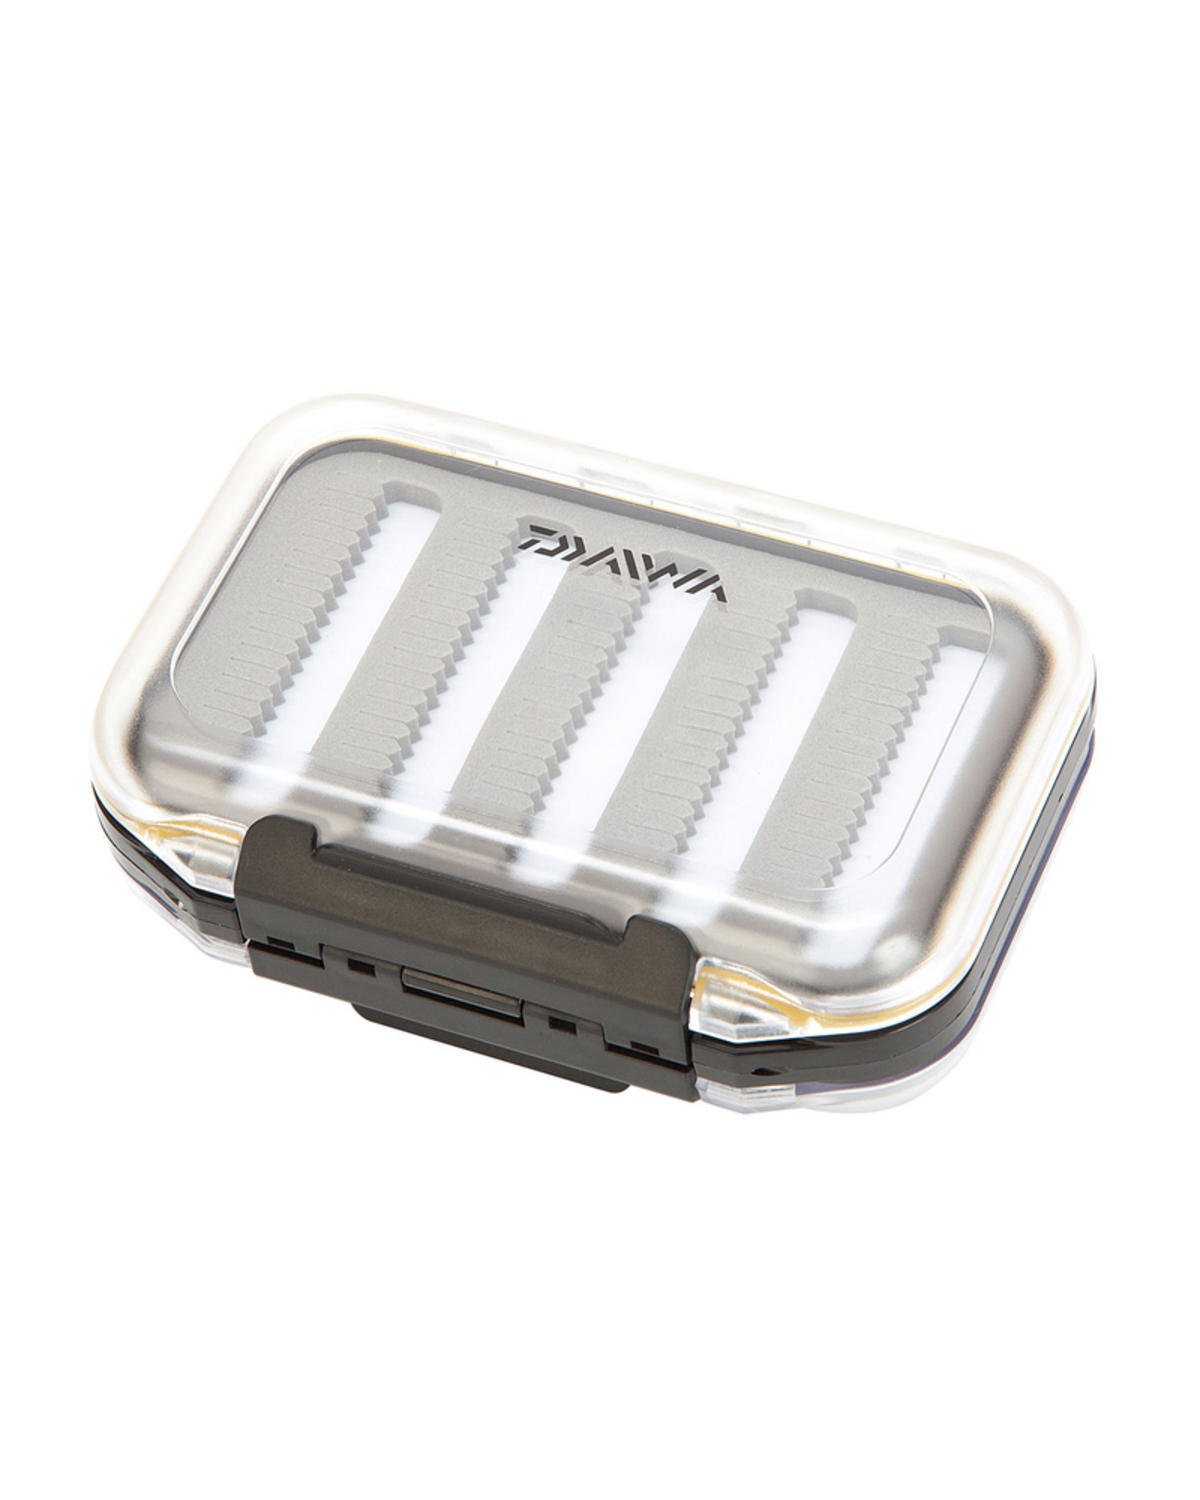 DAIWA INVEIW FLY BOX MEDIUM OR LARGE